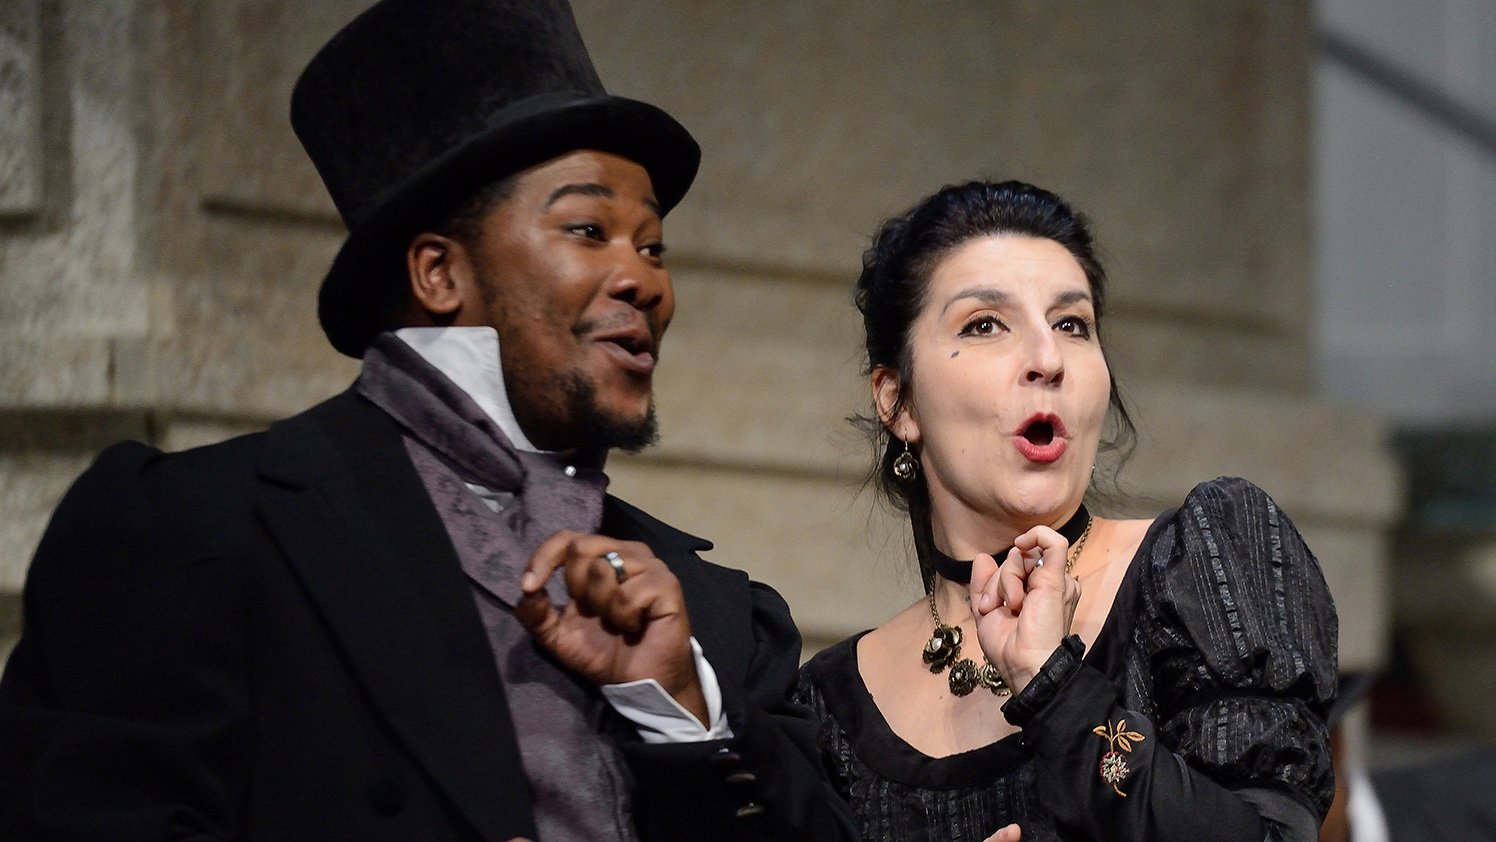 CAPE TOWN,SOUTH AFRICA - OCTOBER 16: Violina Anguelov as Marcellina and Lukhanyo Moyake as Don Basilio perform during the Marriage of Figaro at the Cape Town Opera on October 16,2014 in Cape Town, South Africa. (Photo by John Snelling/Getty Images)